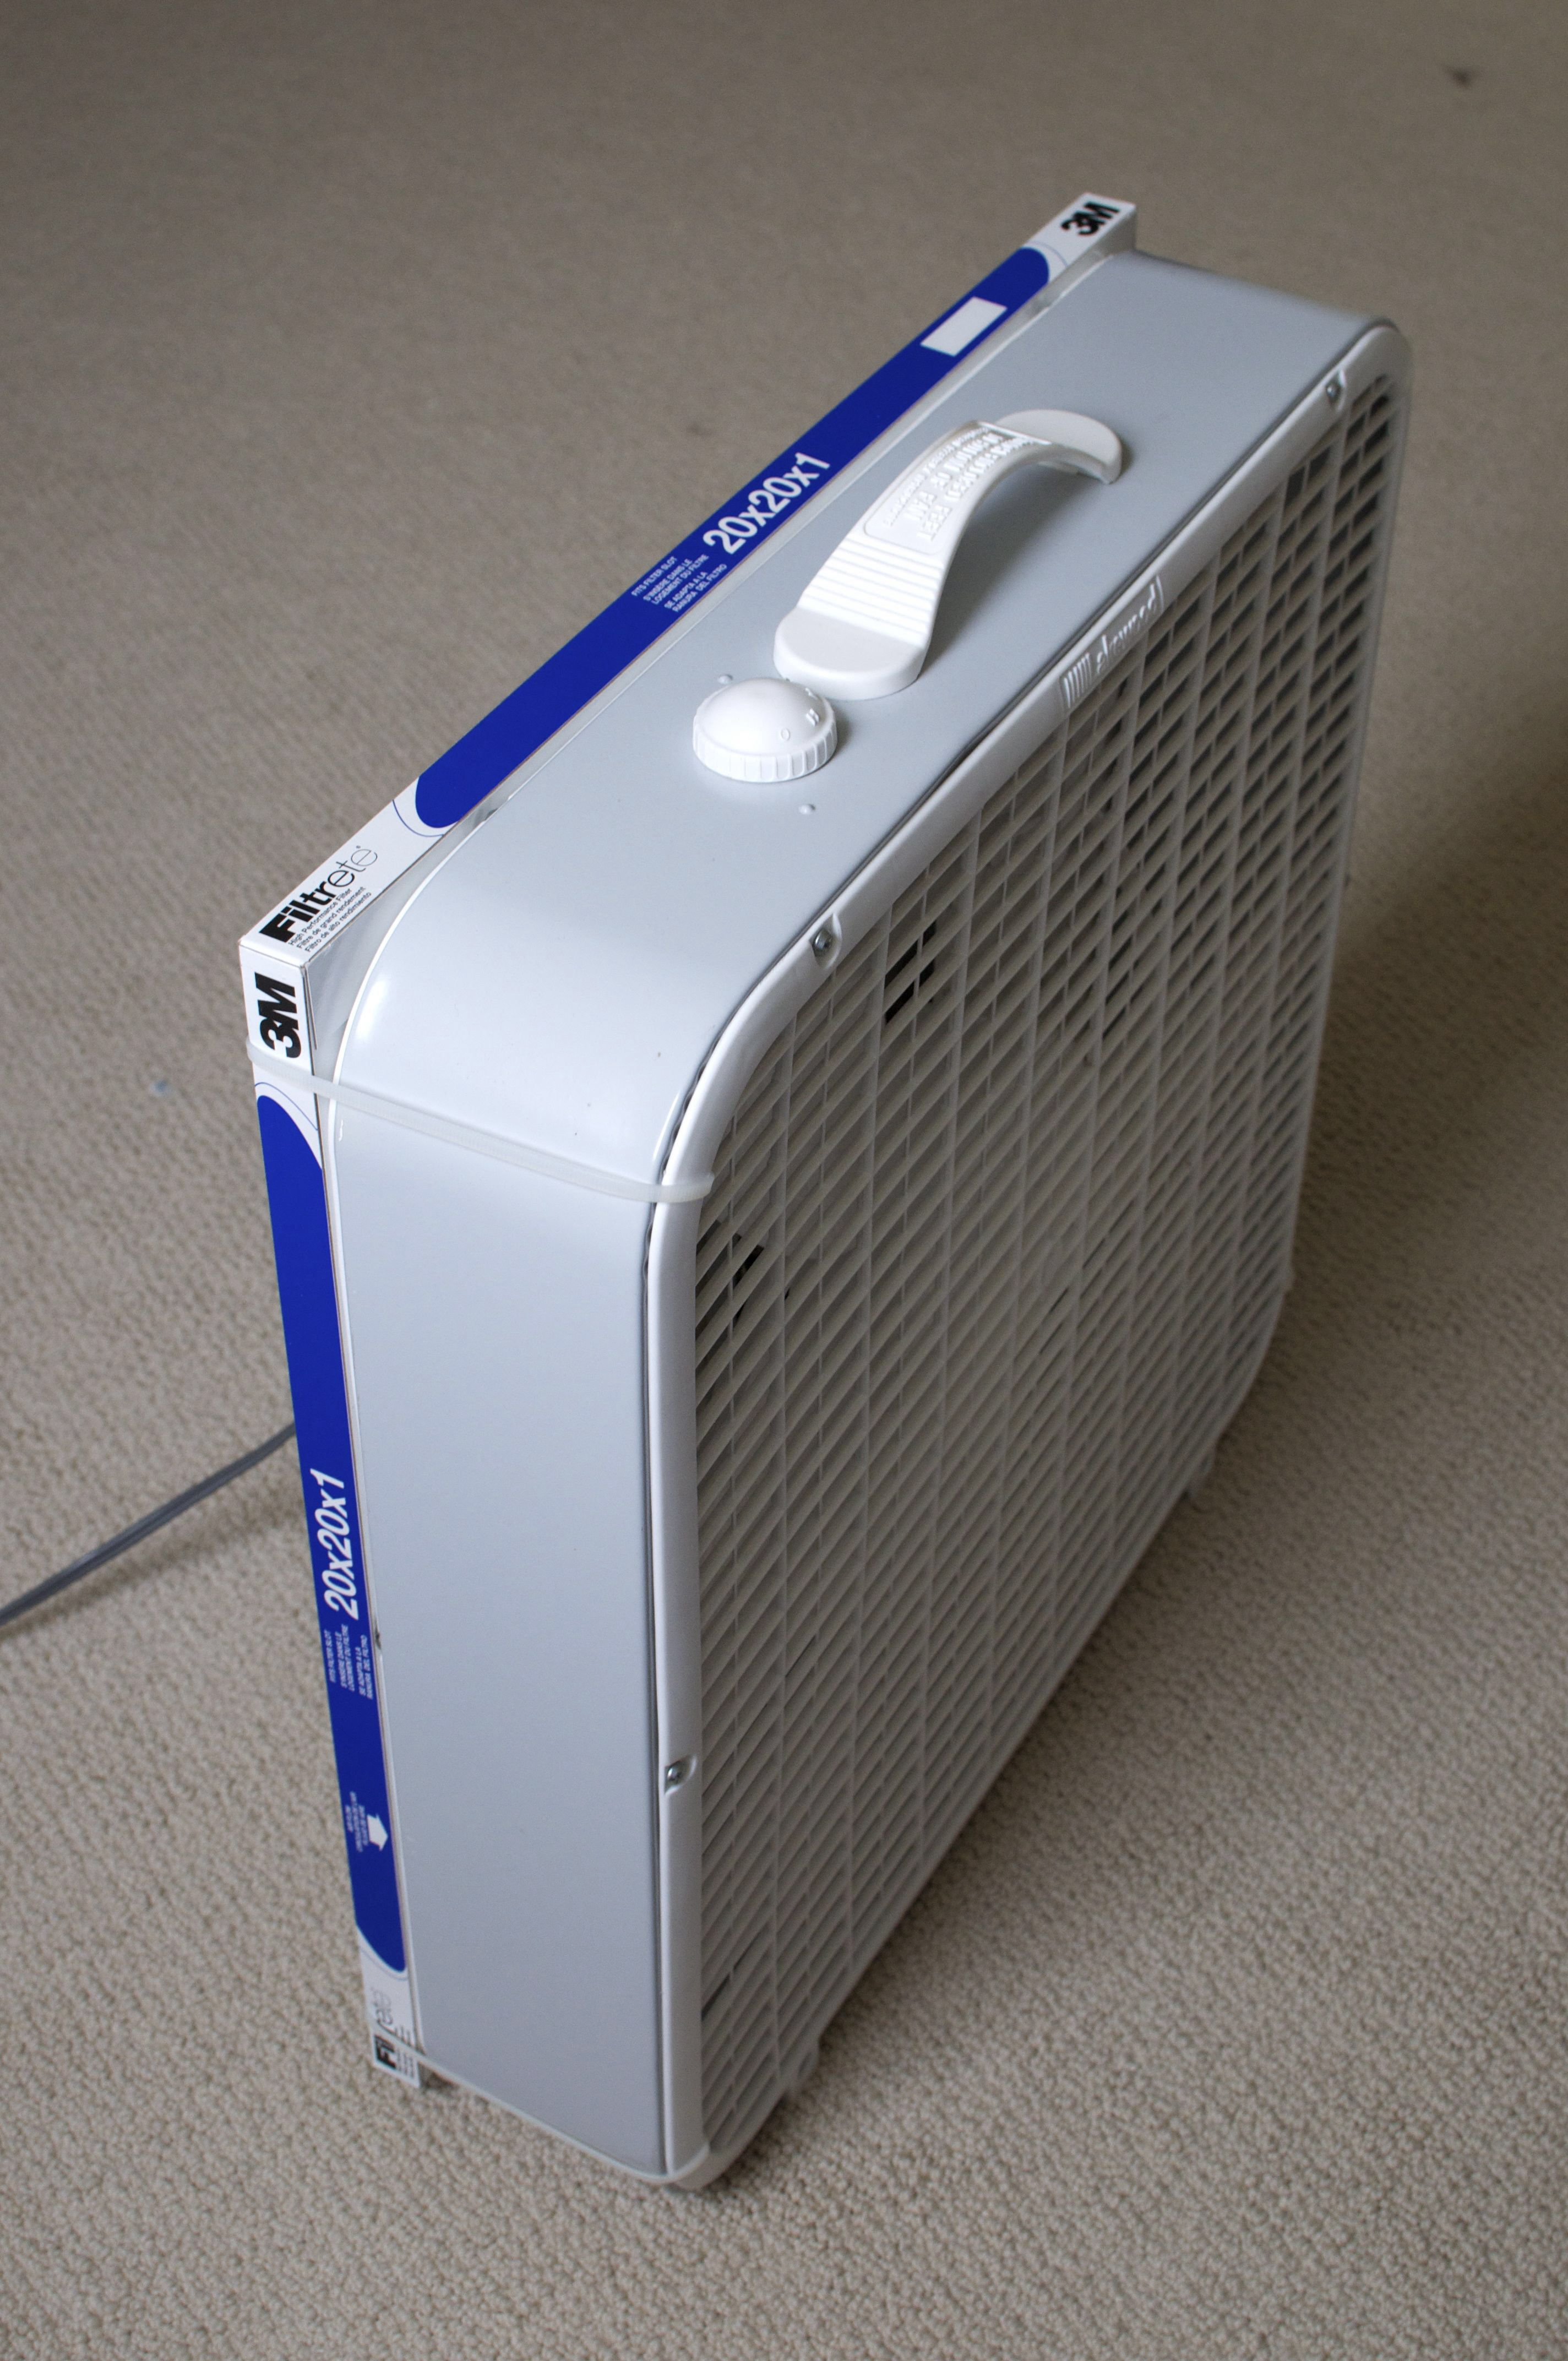 Make your own air purifier. A box/window fan with furnace